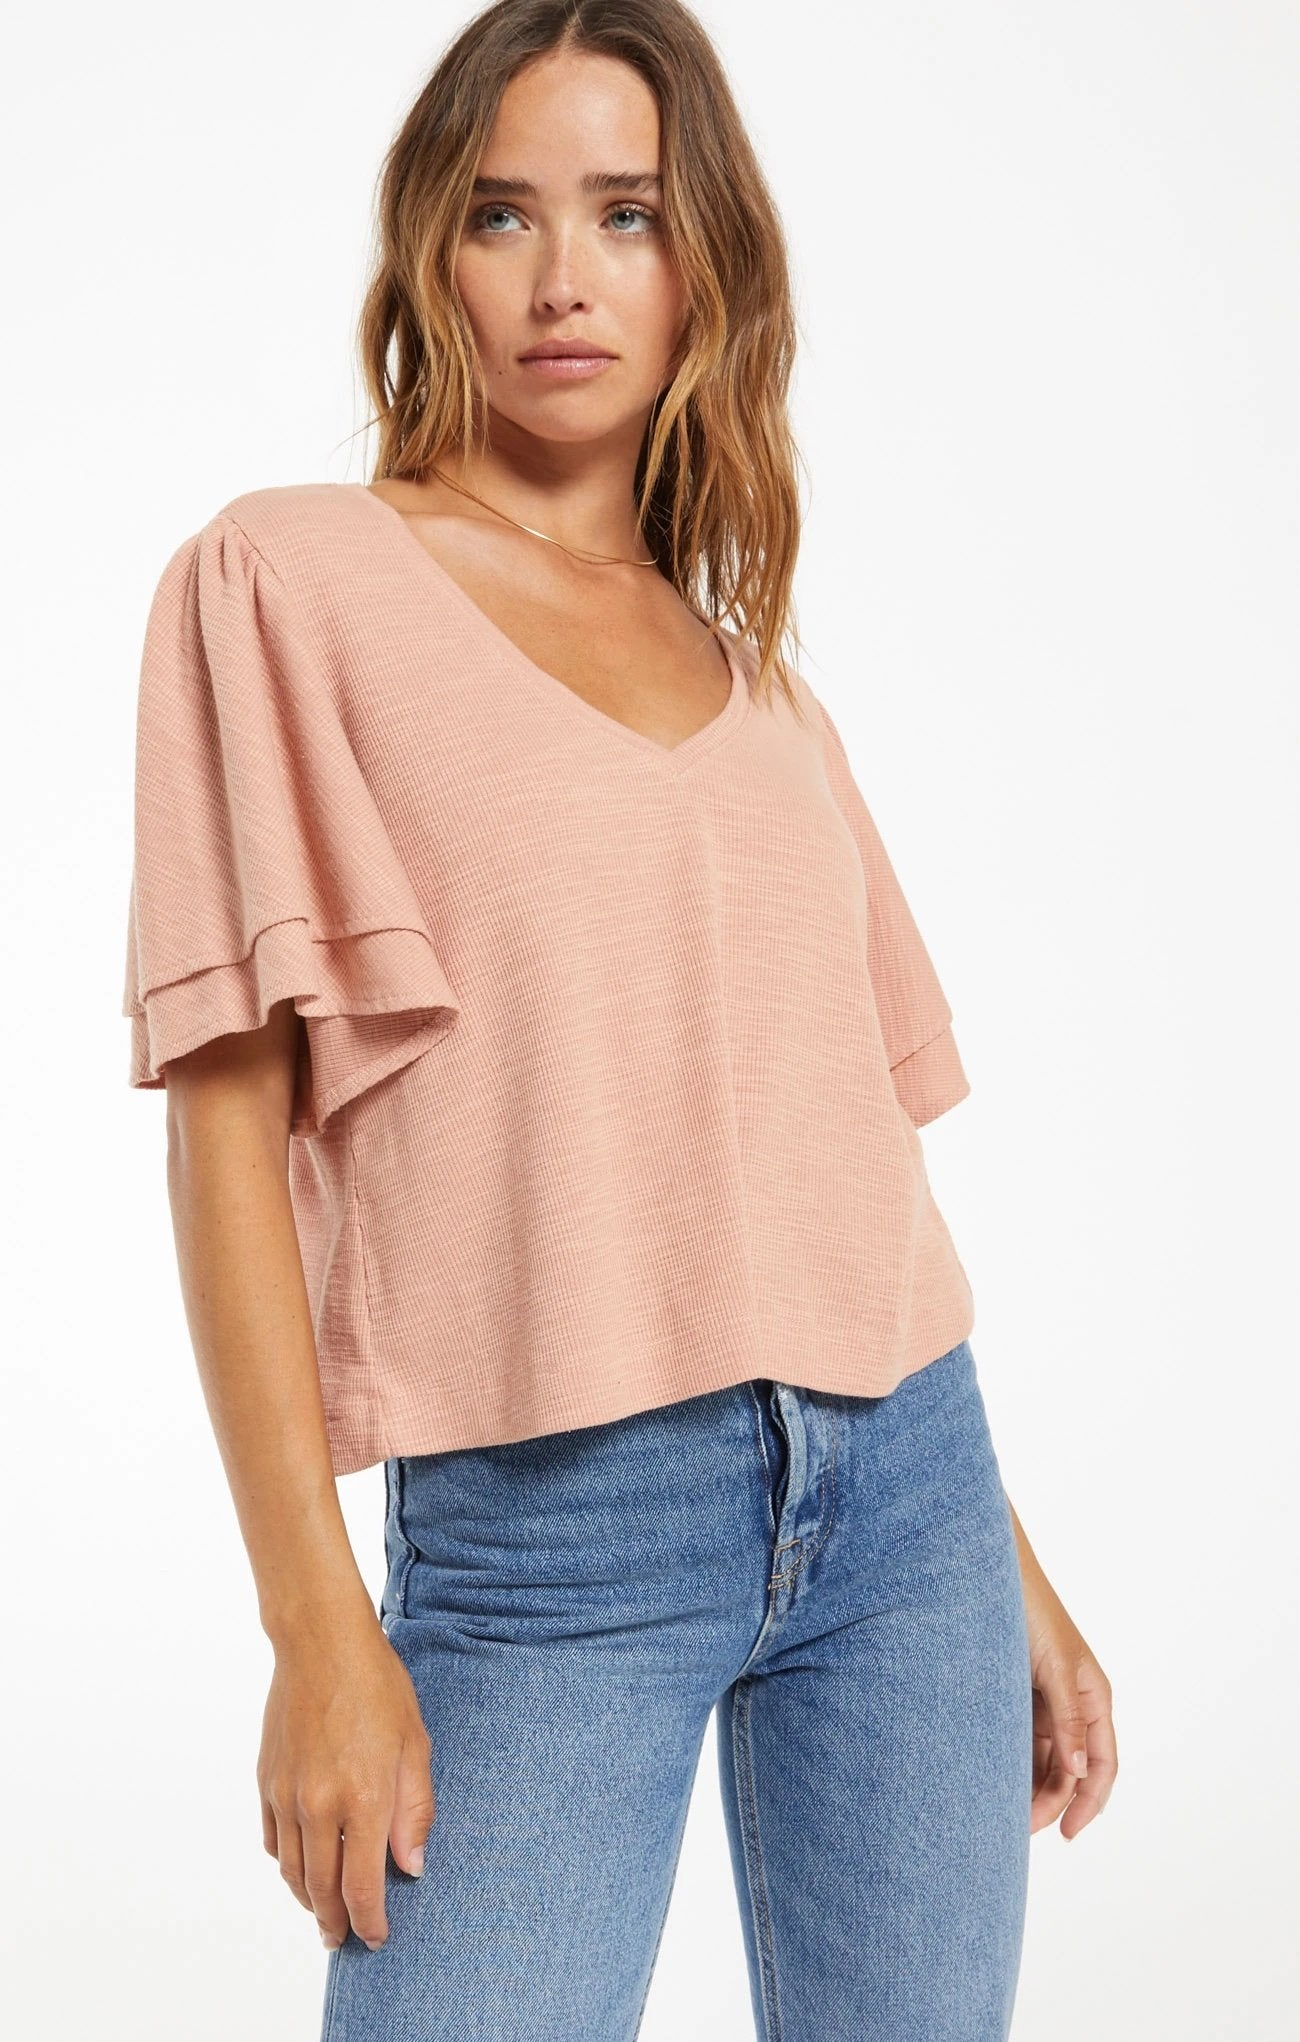 Z SUPPLY Women's Top Z Supply Blake Slub Ruffle Top || David's Clothing